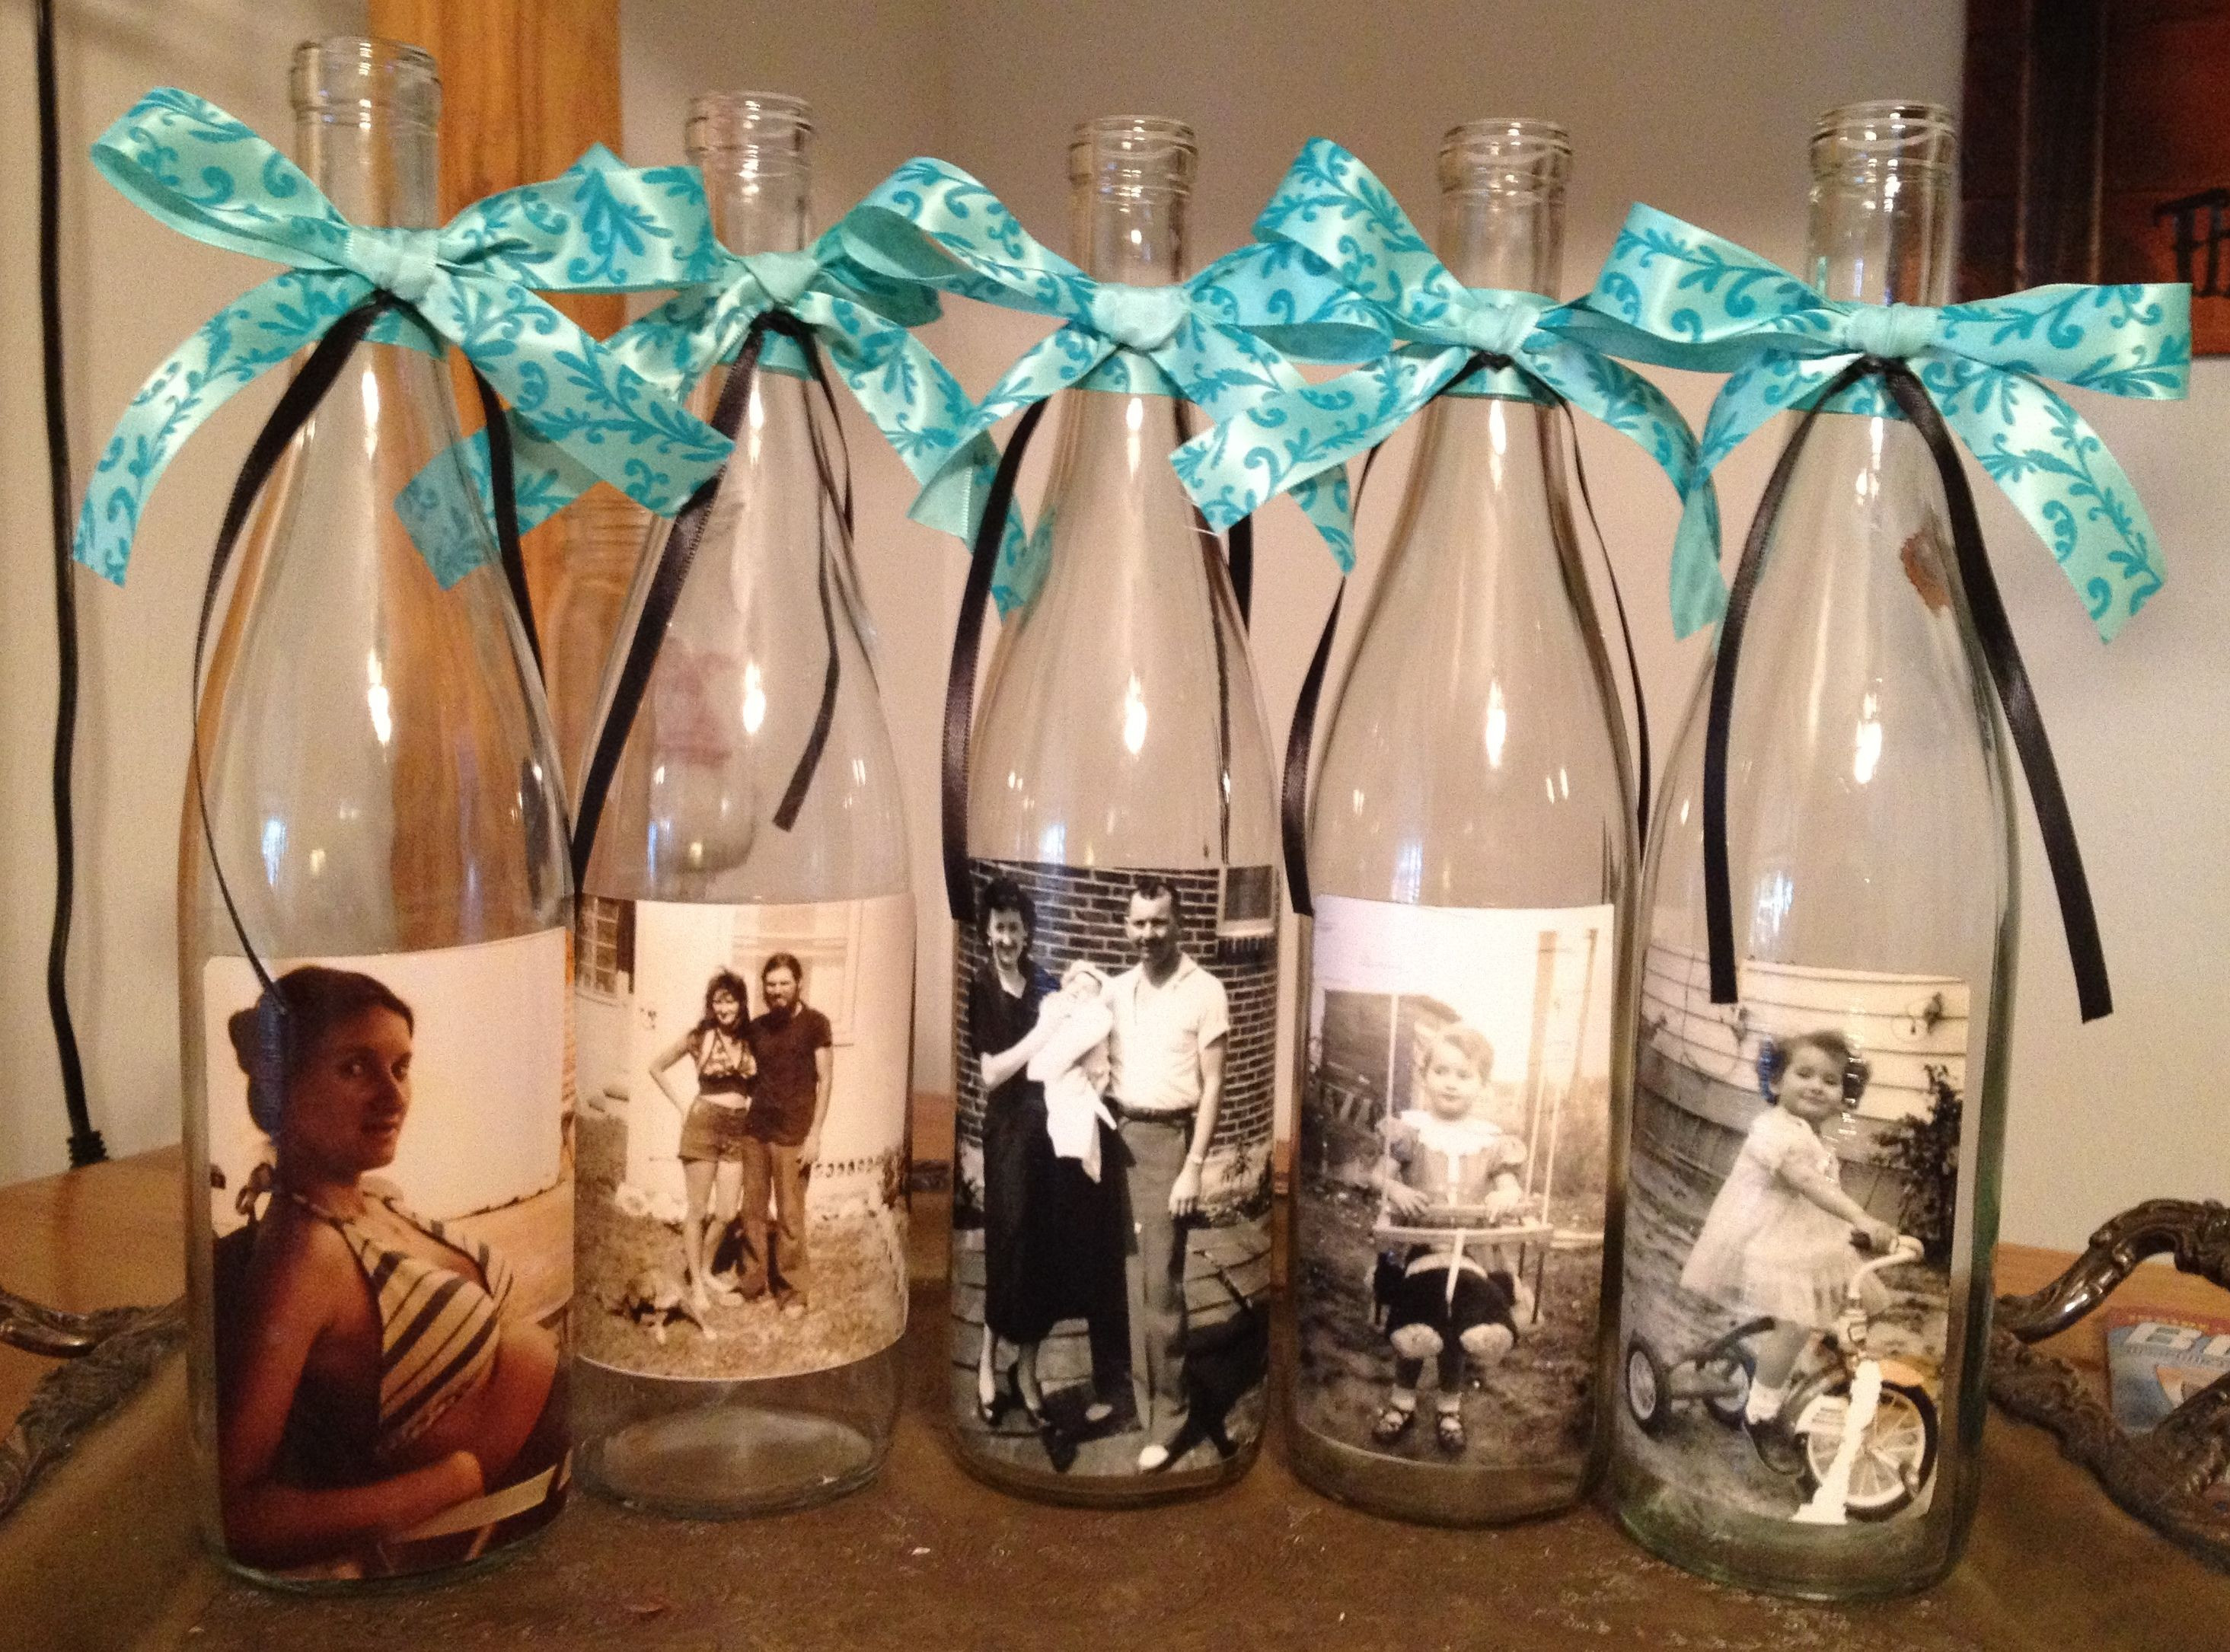 mod podge photo transfer to glass vase of how to save a bottle of wine with a damaged cork wine bottle intended for mod podge photos on wine bottles for center pieces but i would put sand in bottom tea light behind and different ribbon